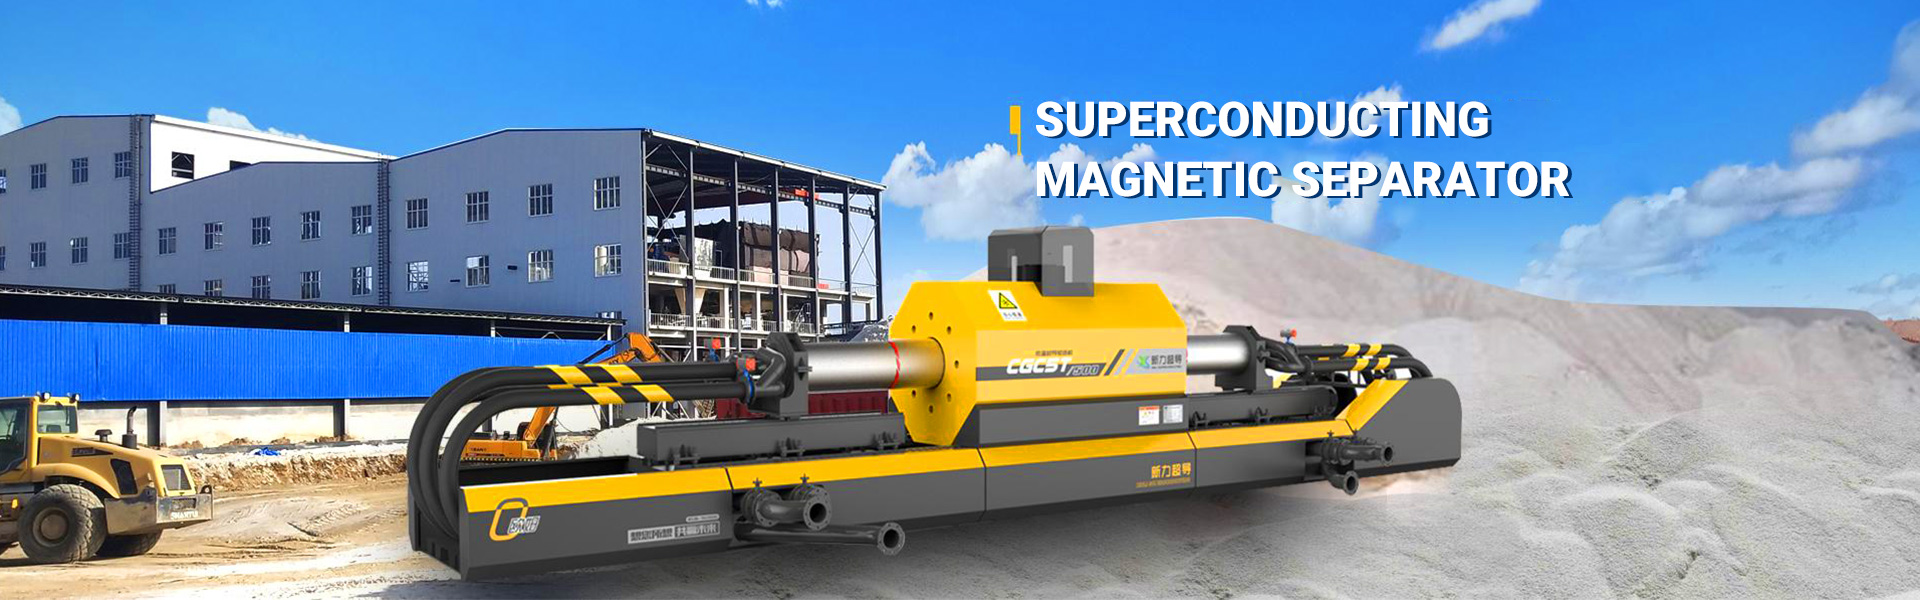 MAGNETIC SEPARATOR FOR METALLIC MINERALS